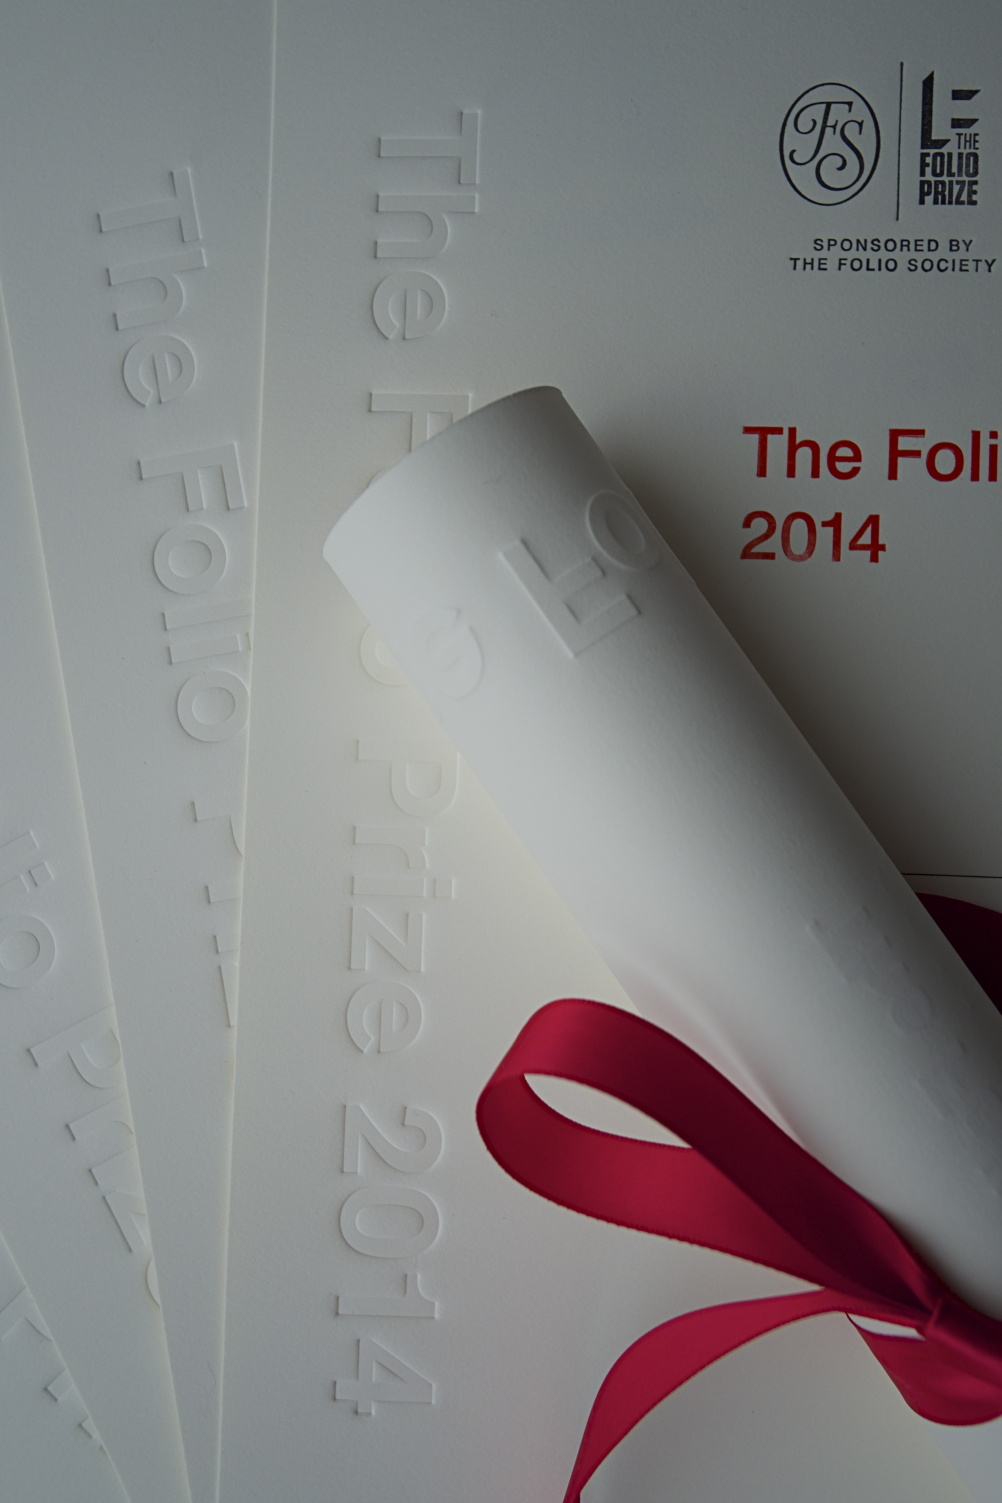 Folio Prize award designed by Sir Kenneth Grange and Mike Dempsey